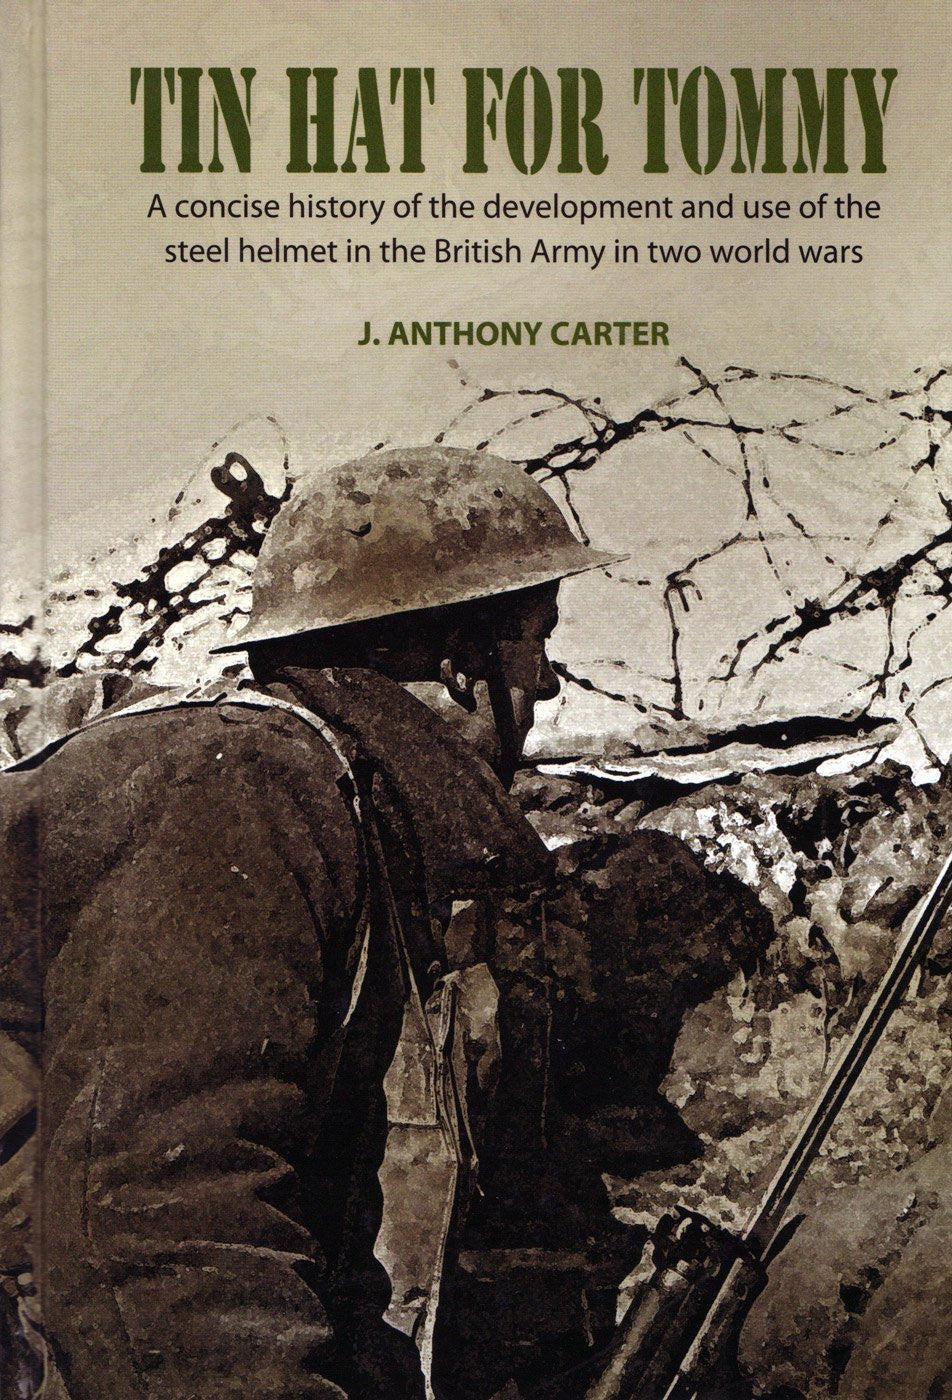 """Tin Hat For Tommy- History of the British Brodie Helmet"" by J. Anthony Carter"